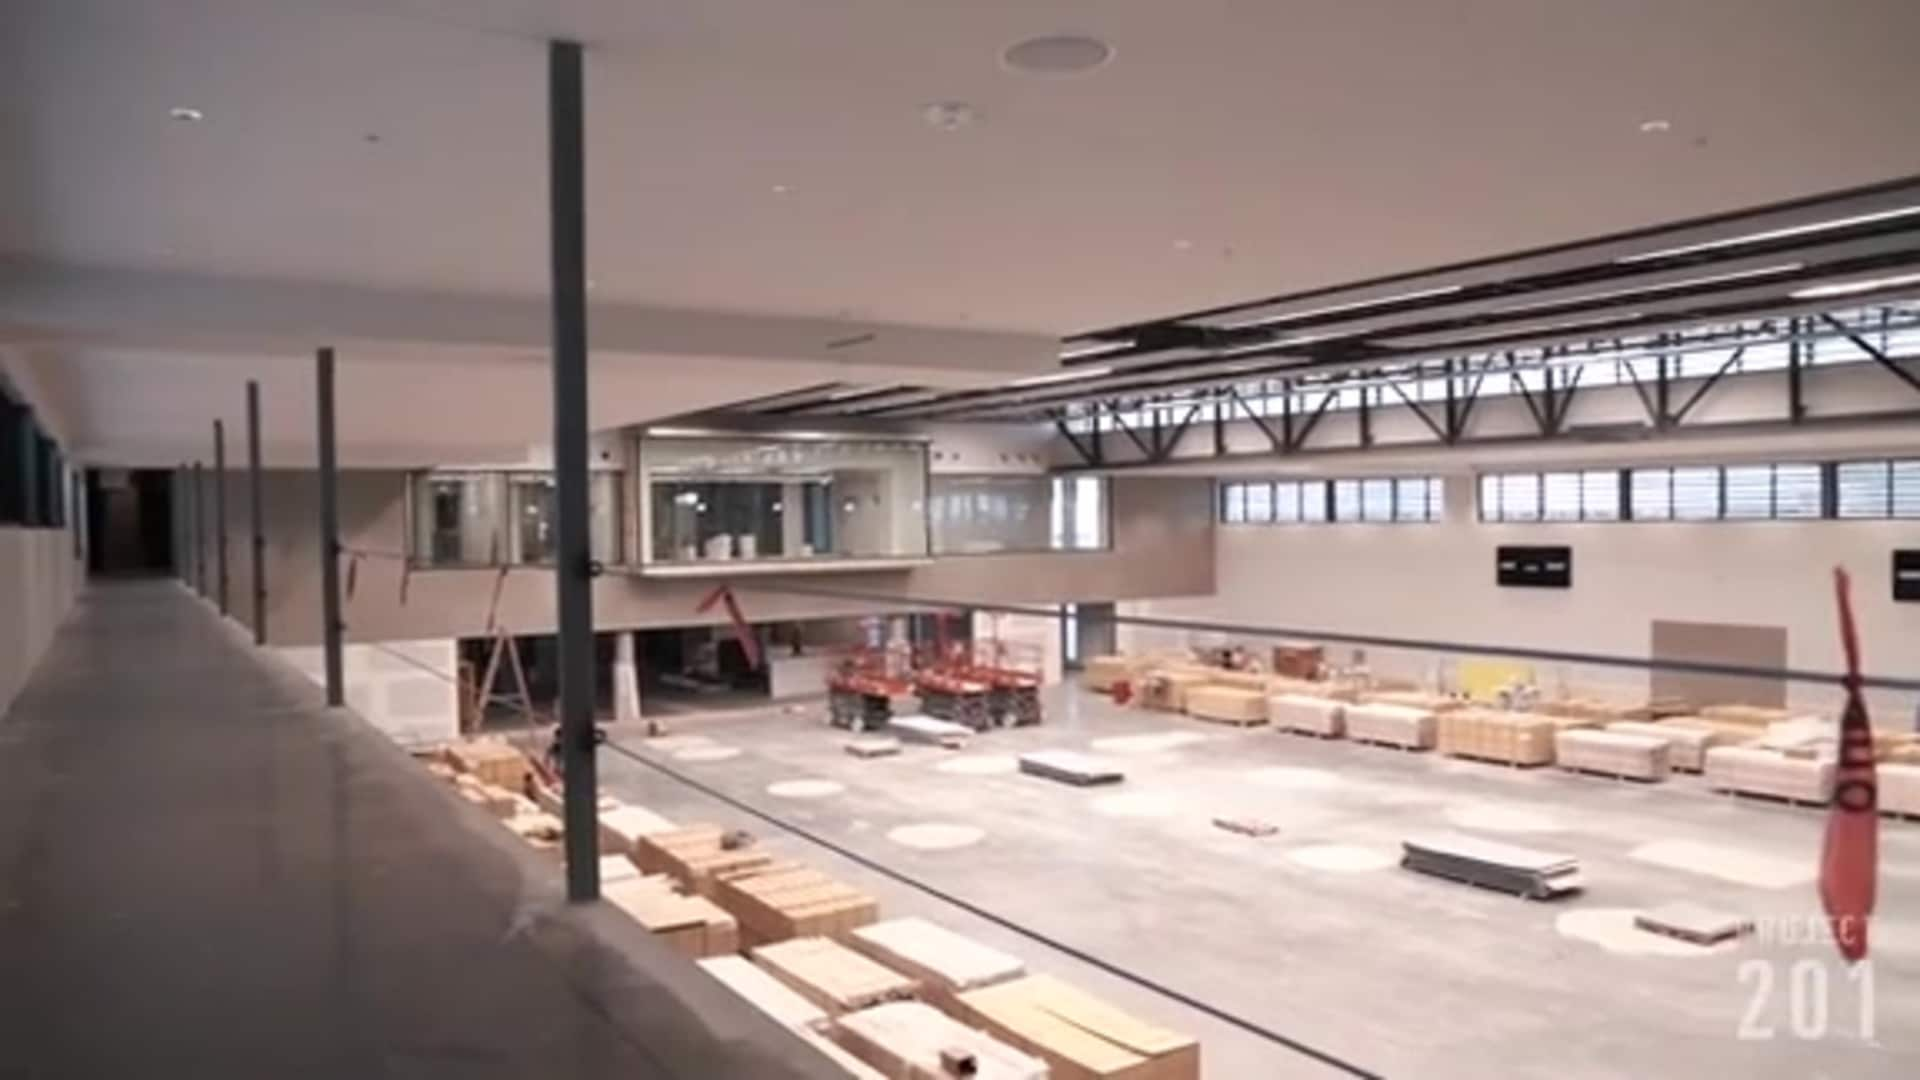 Transformation Thursday: The Performance Center Update